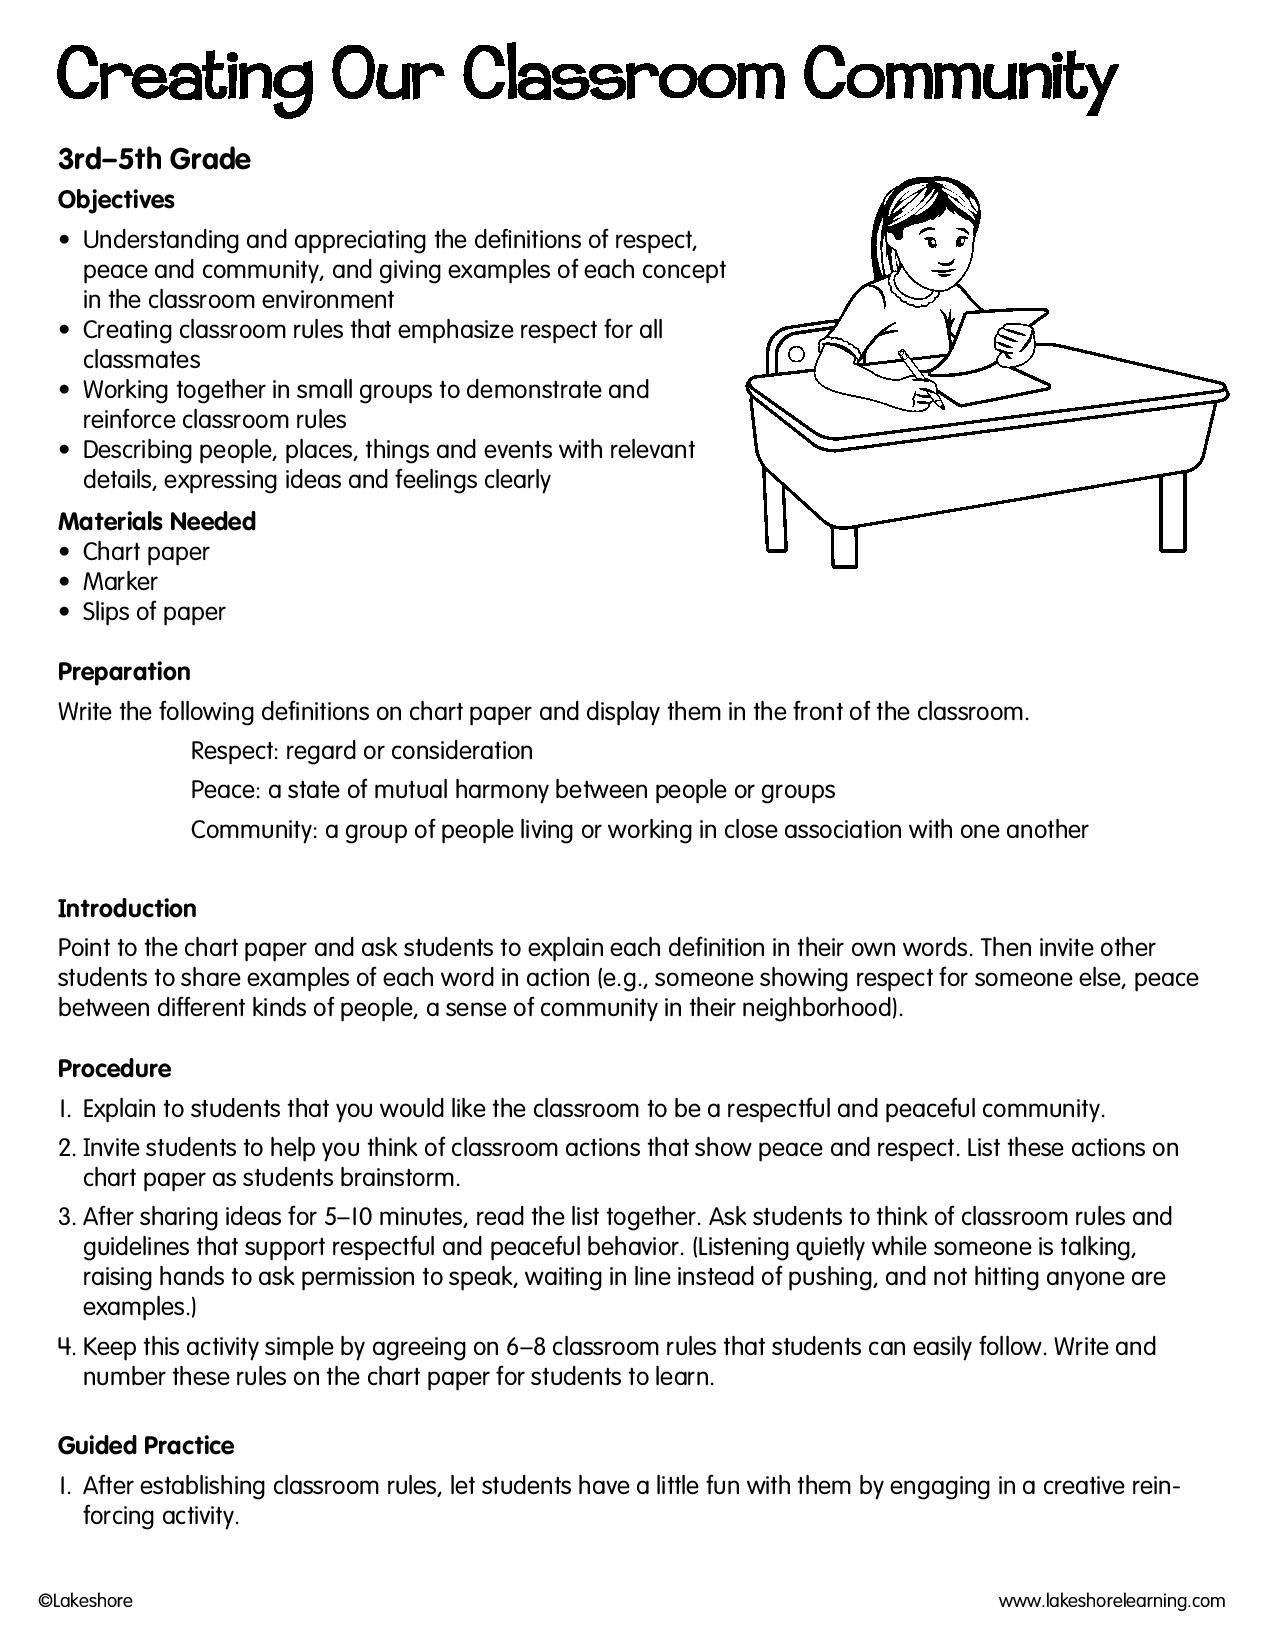 Creating Our Classroom Community Lessonplan Classroom